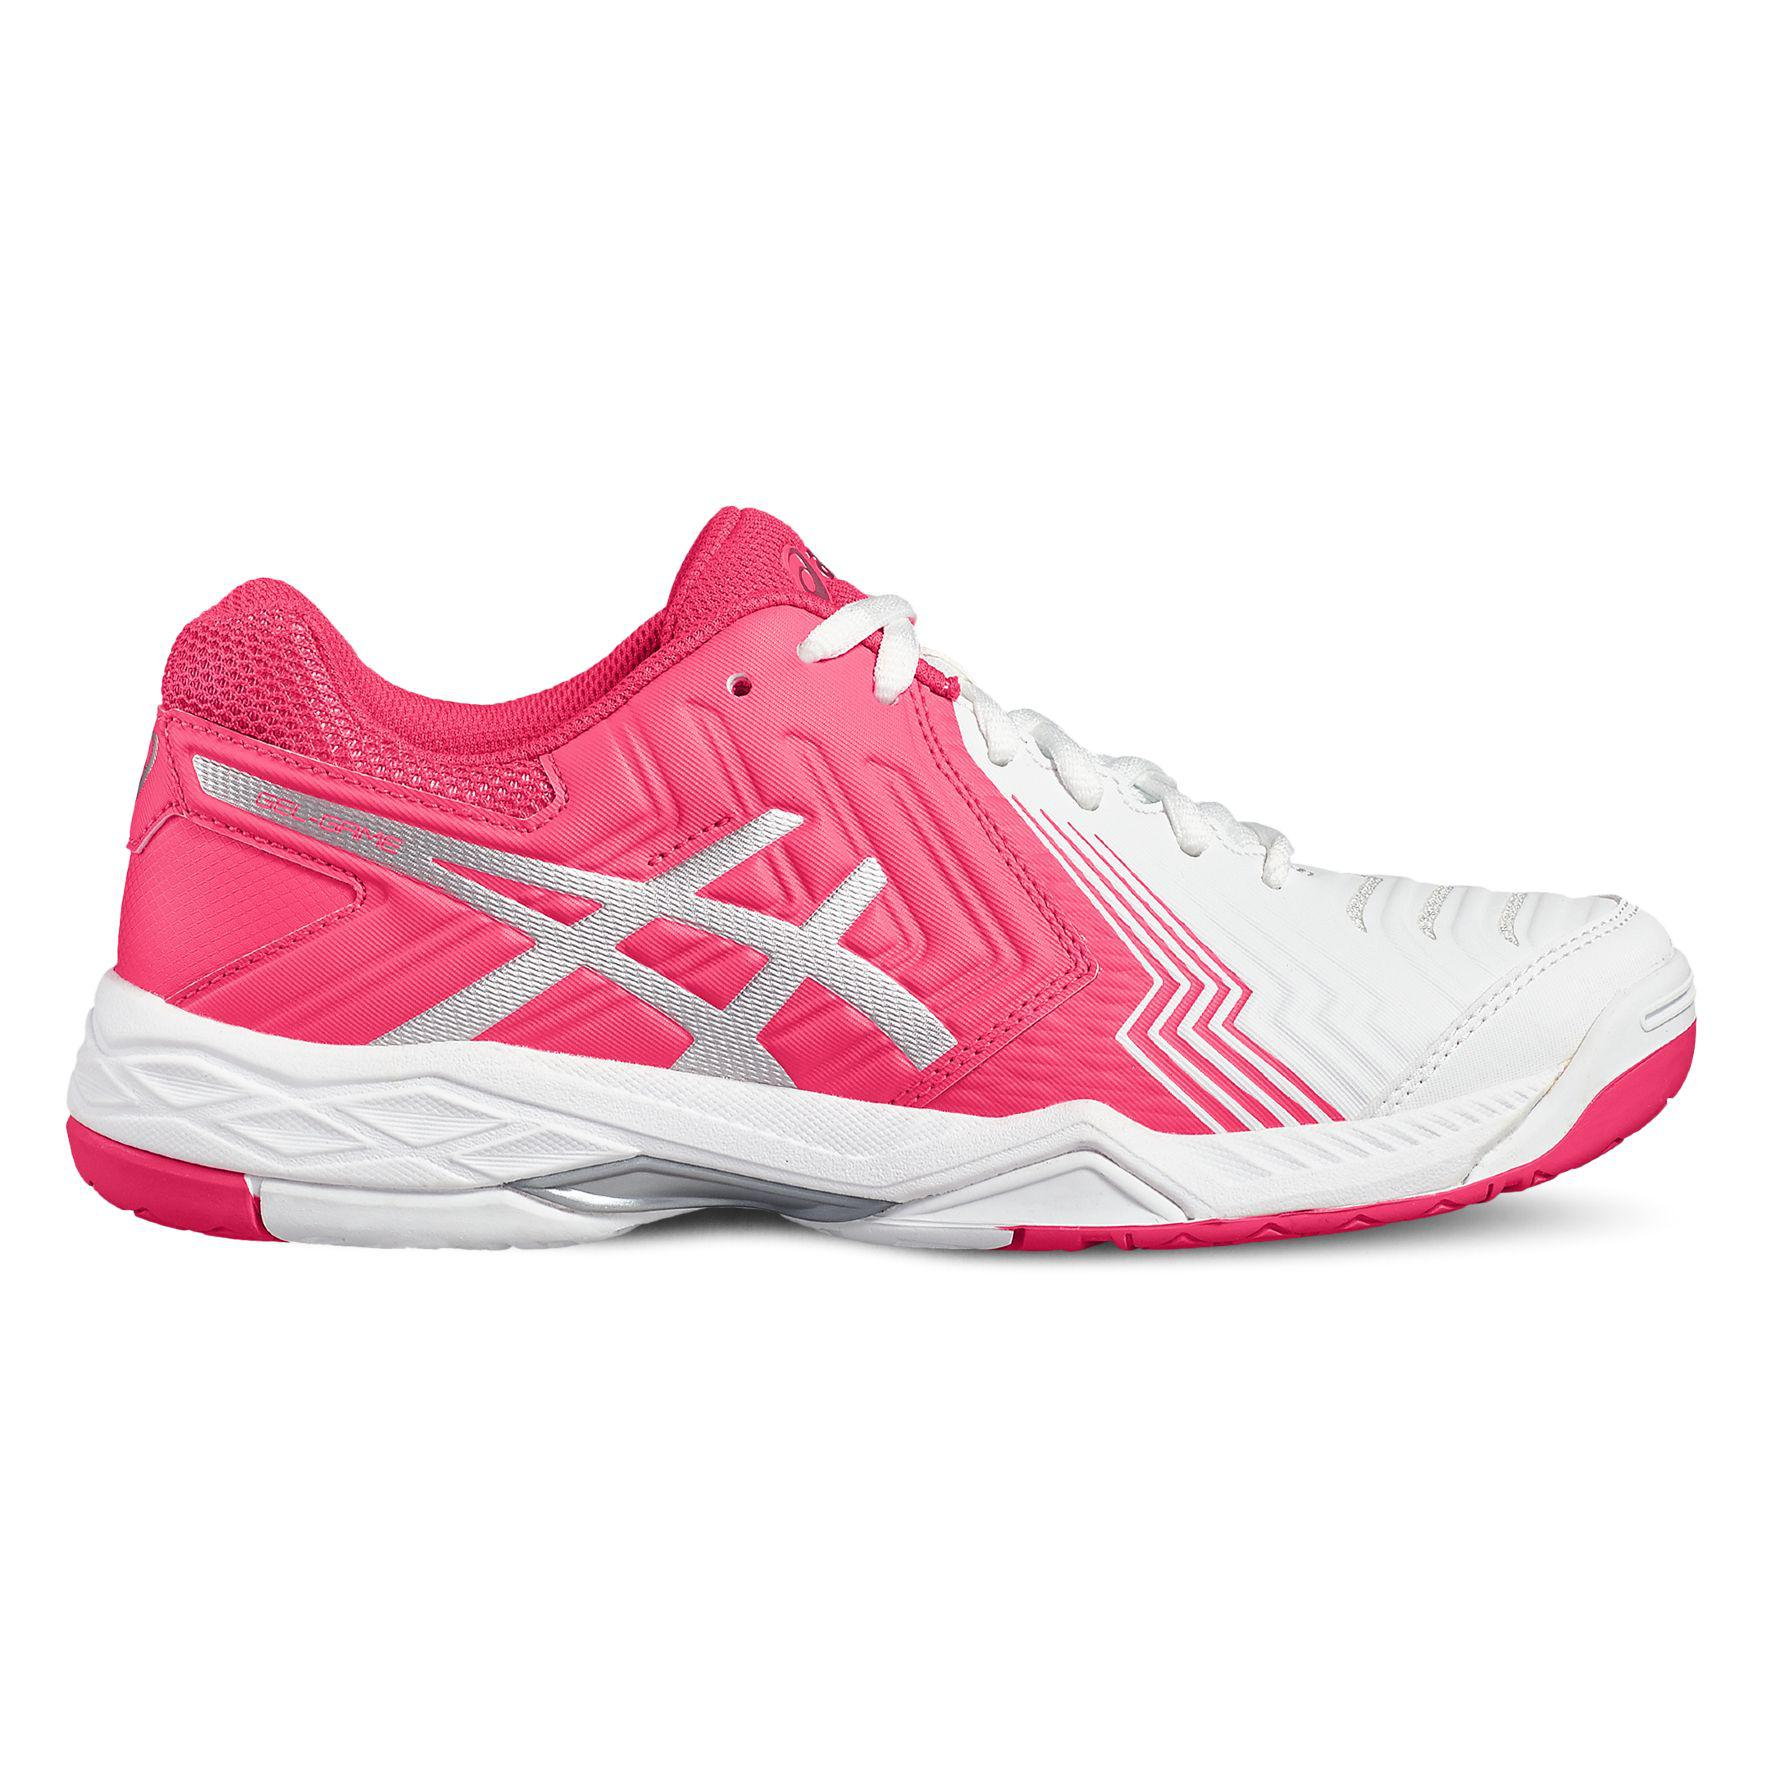 Asics Gel Game 6 Women's Tennis Shoes - 54% Off ...